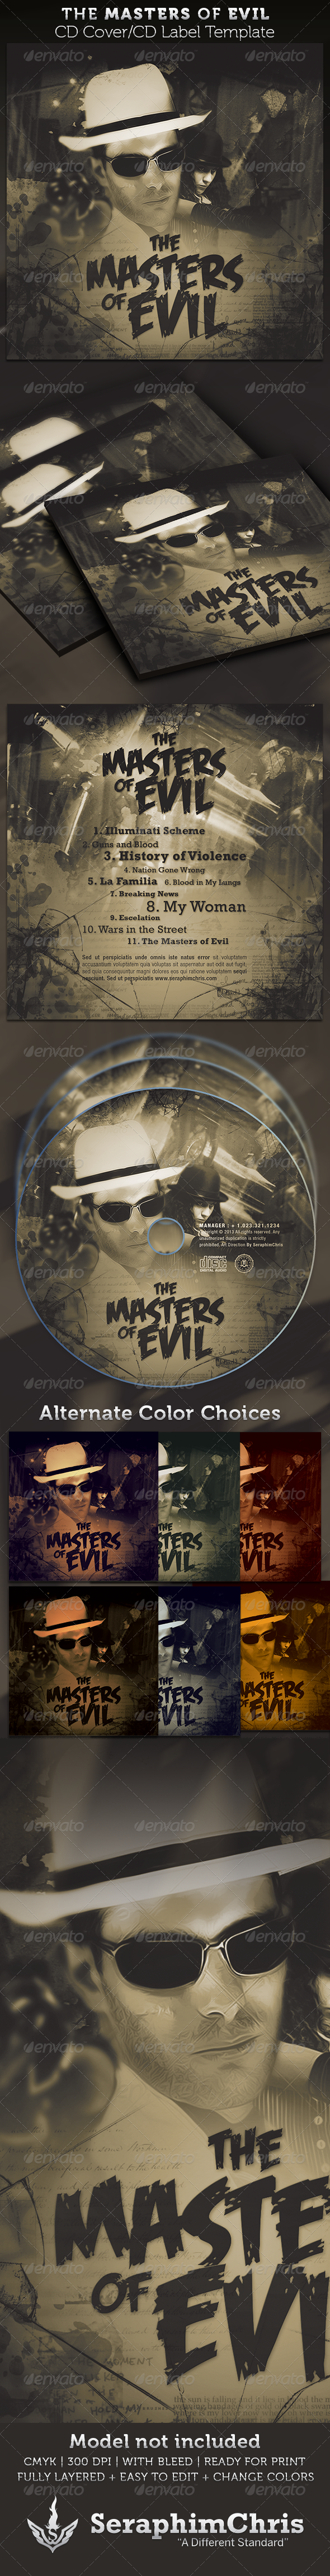 GraphicRiver The Masters of Evil CD Cover Artwork Template 4066668